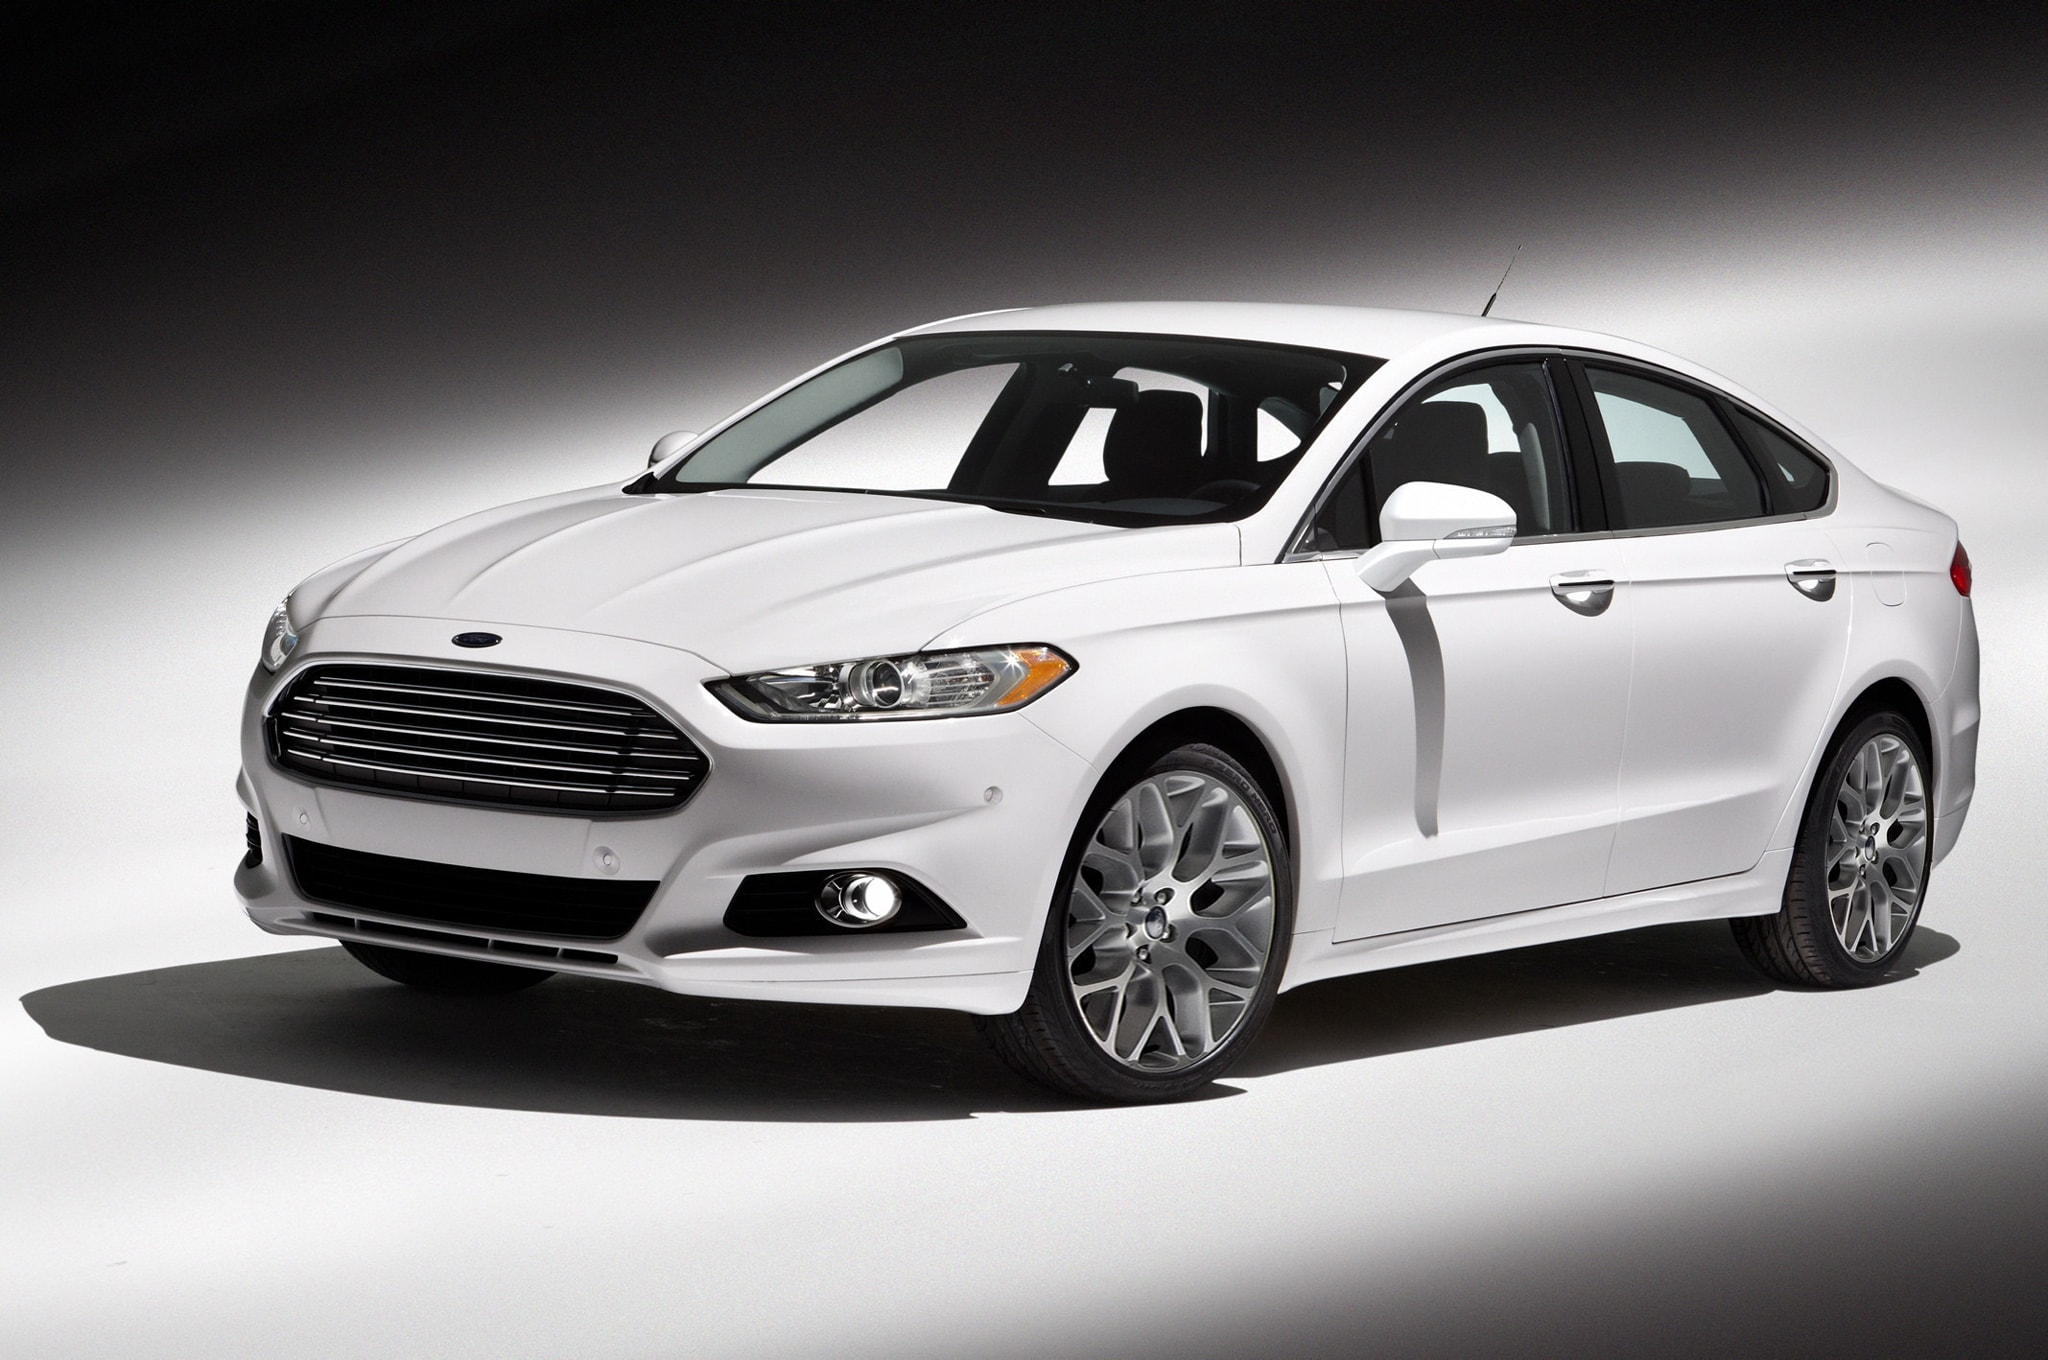 2013 Ford Fusion Wallpapers